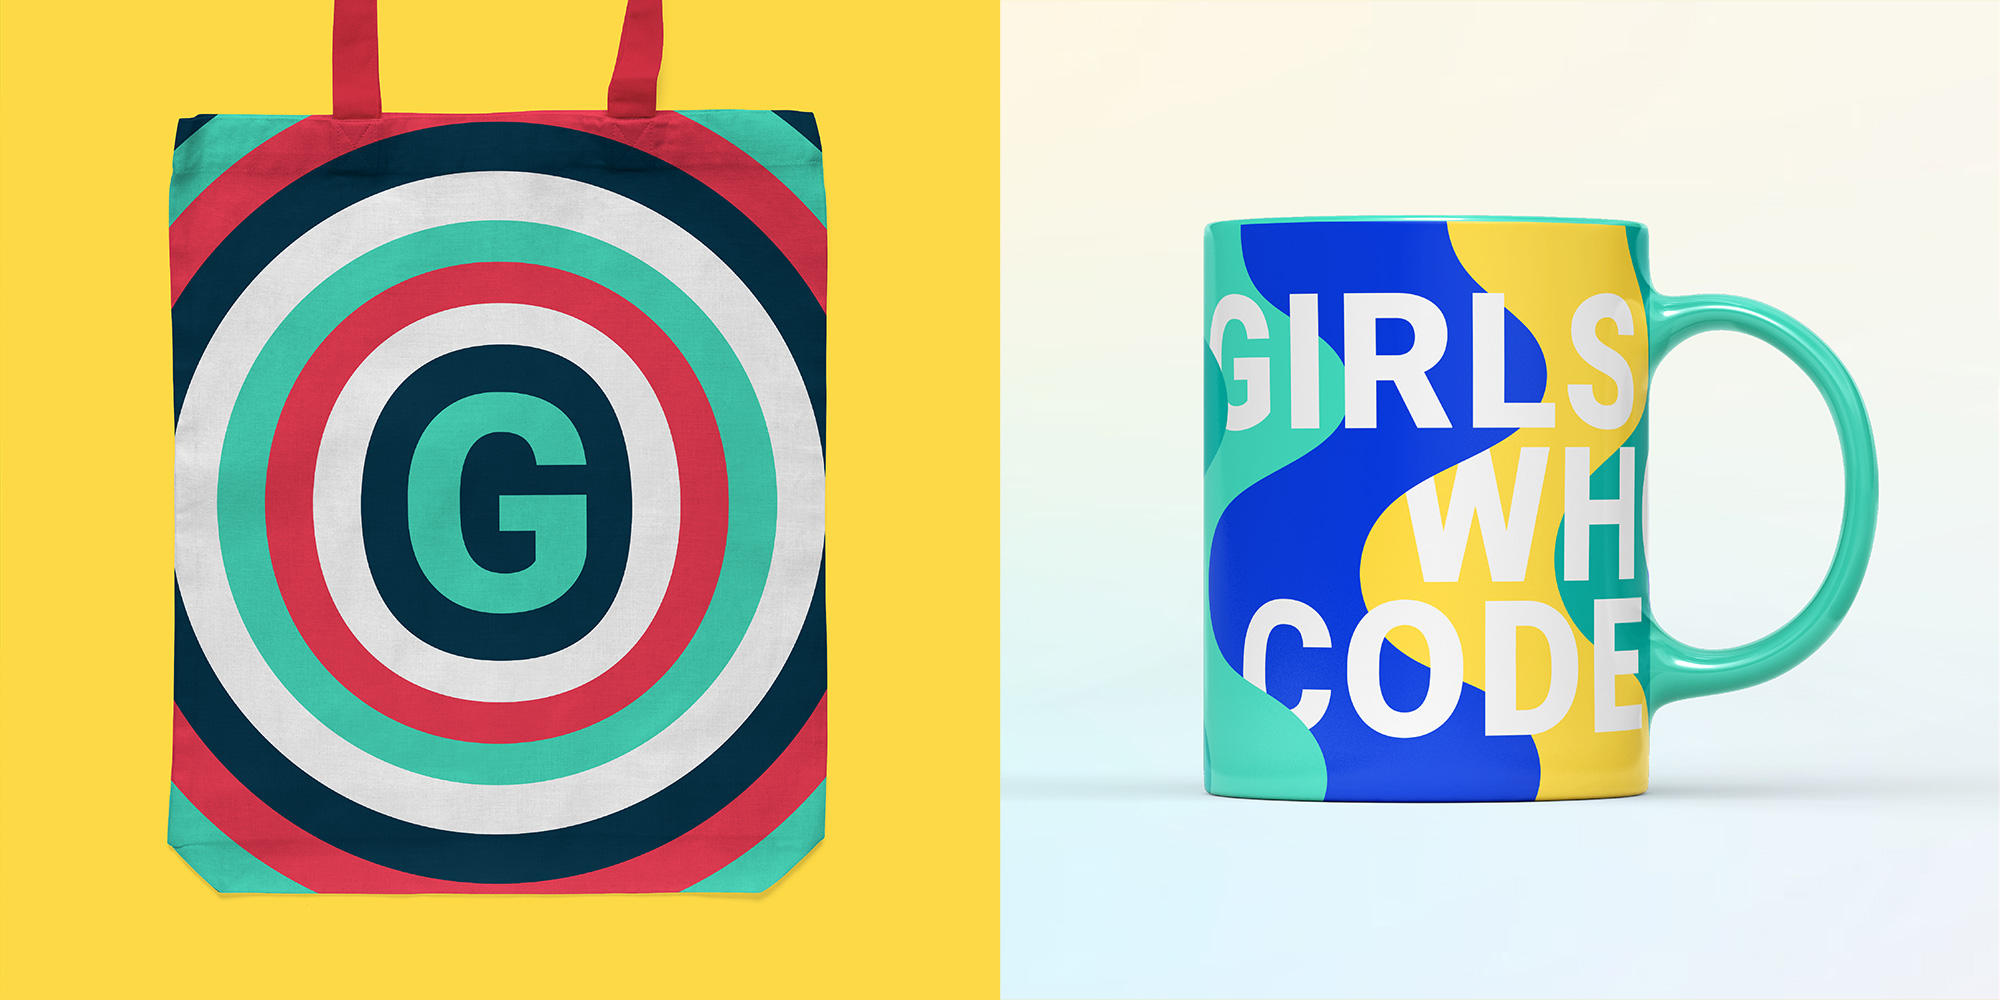 New Logo and Identity for Girls Who Code by Hyperakt